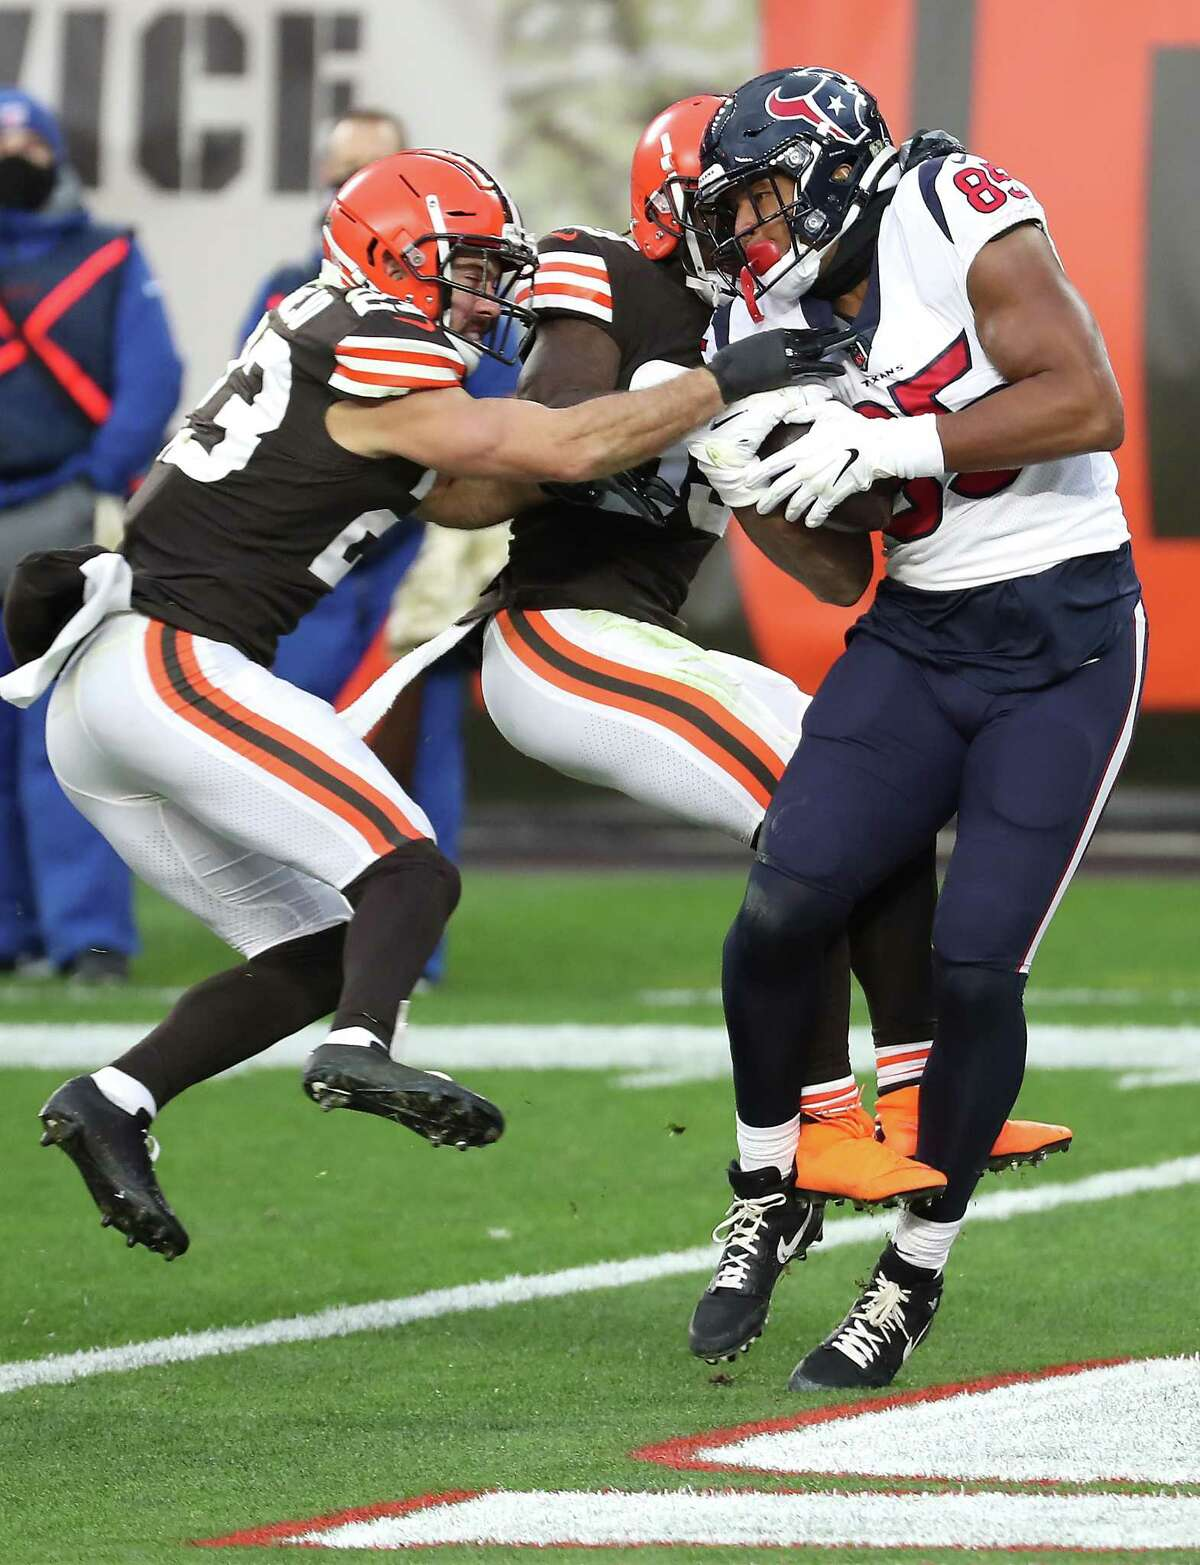 Houston Texans tight end Pharaoh Brown (85) makes a 16-yard touchdown reception againstCleveland Browns free safety Andrew Sendejo (23) and cornerback Terrance Mitchell (39) during the fourth quarter of an NFL football game at FirstEnergy Stadium Sunday, Nov. 15, 2020, in Cleveland.